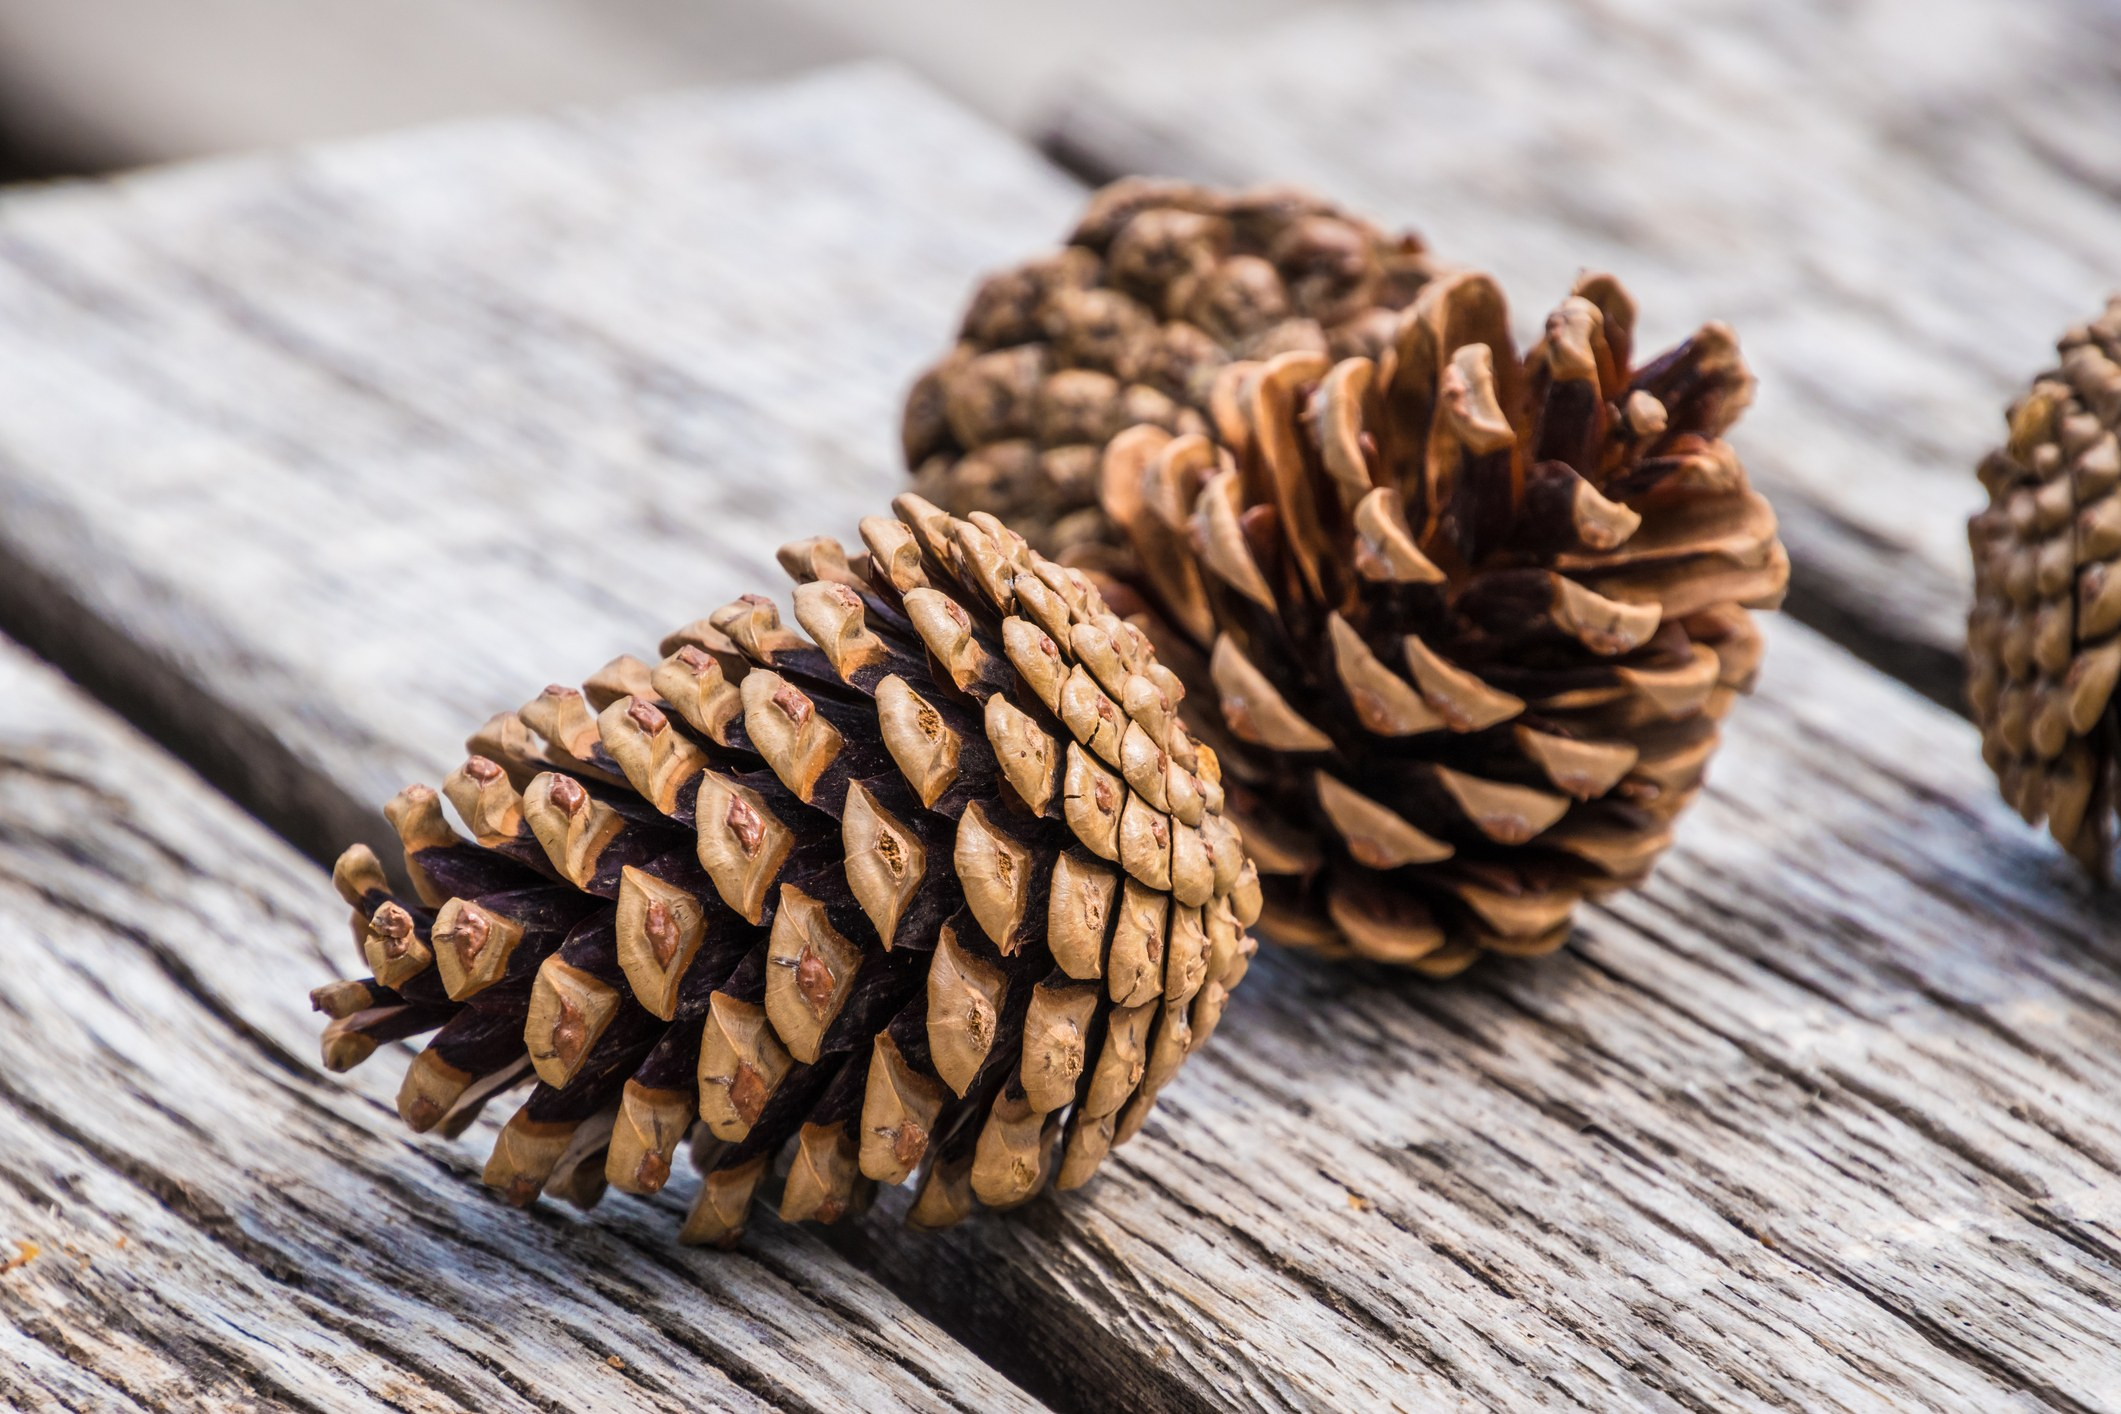 Fir pine cones lying on wood planks